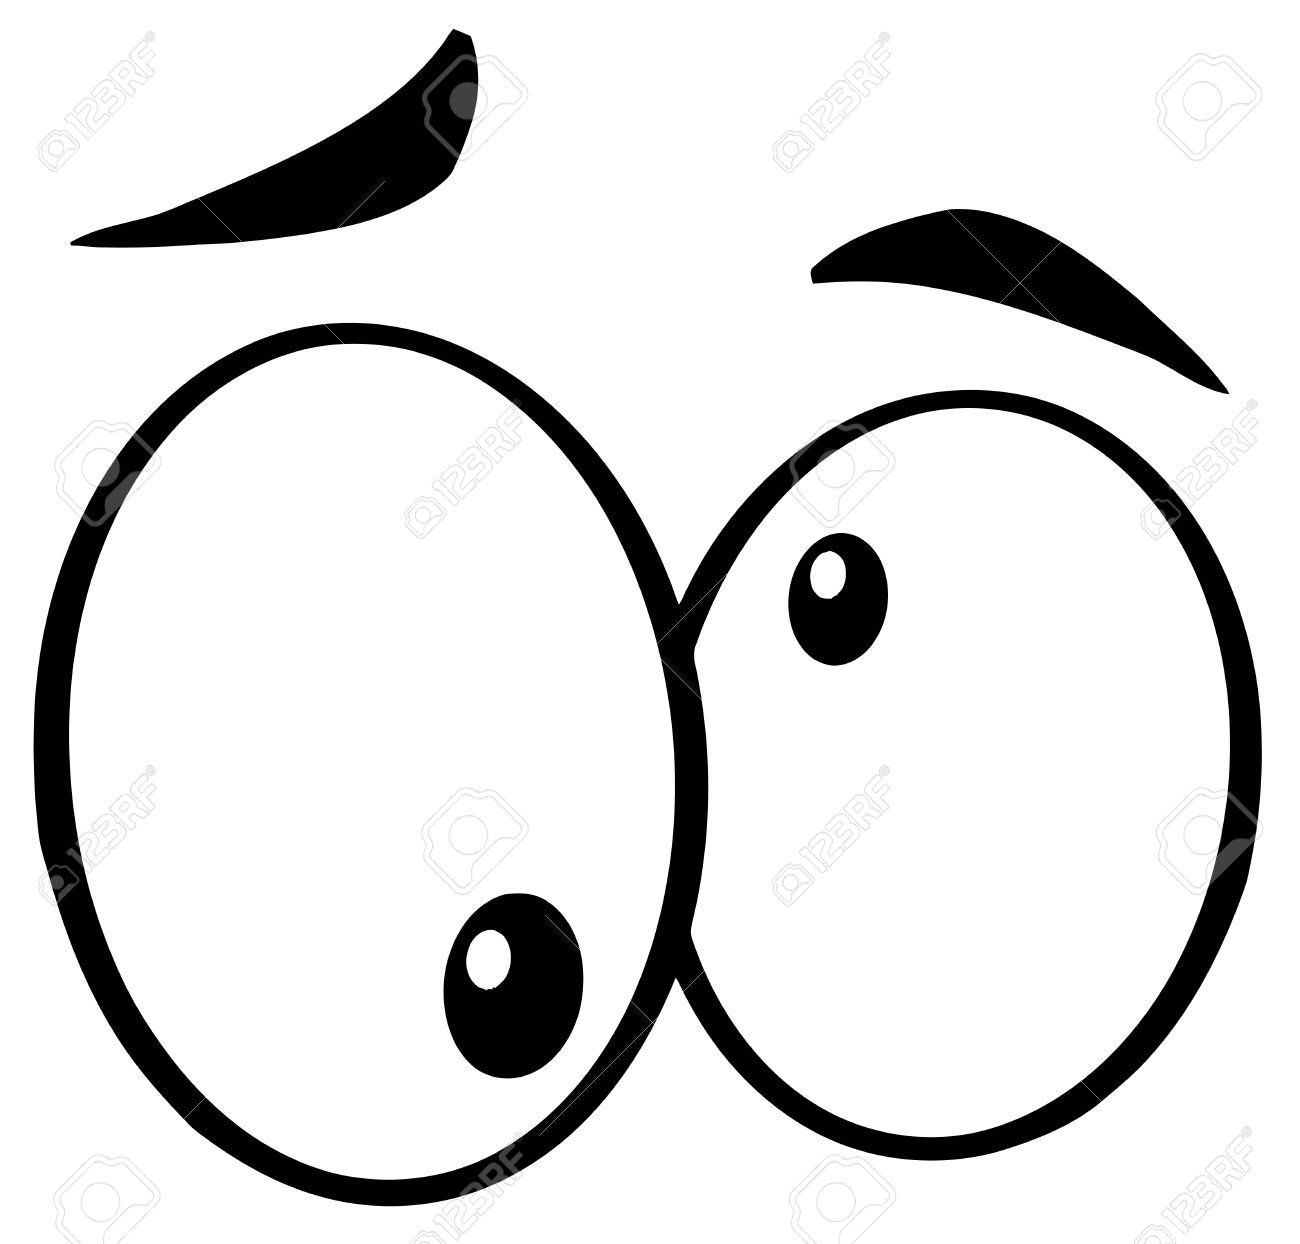 Clip art eyes noses mouths free clipart images.